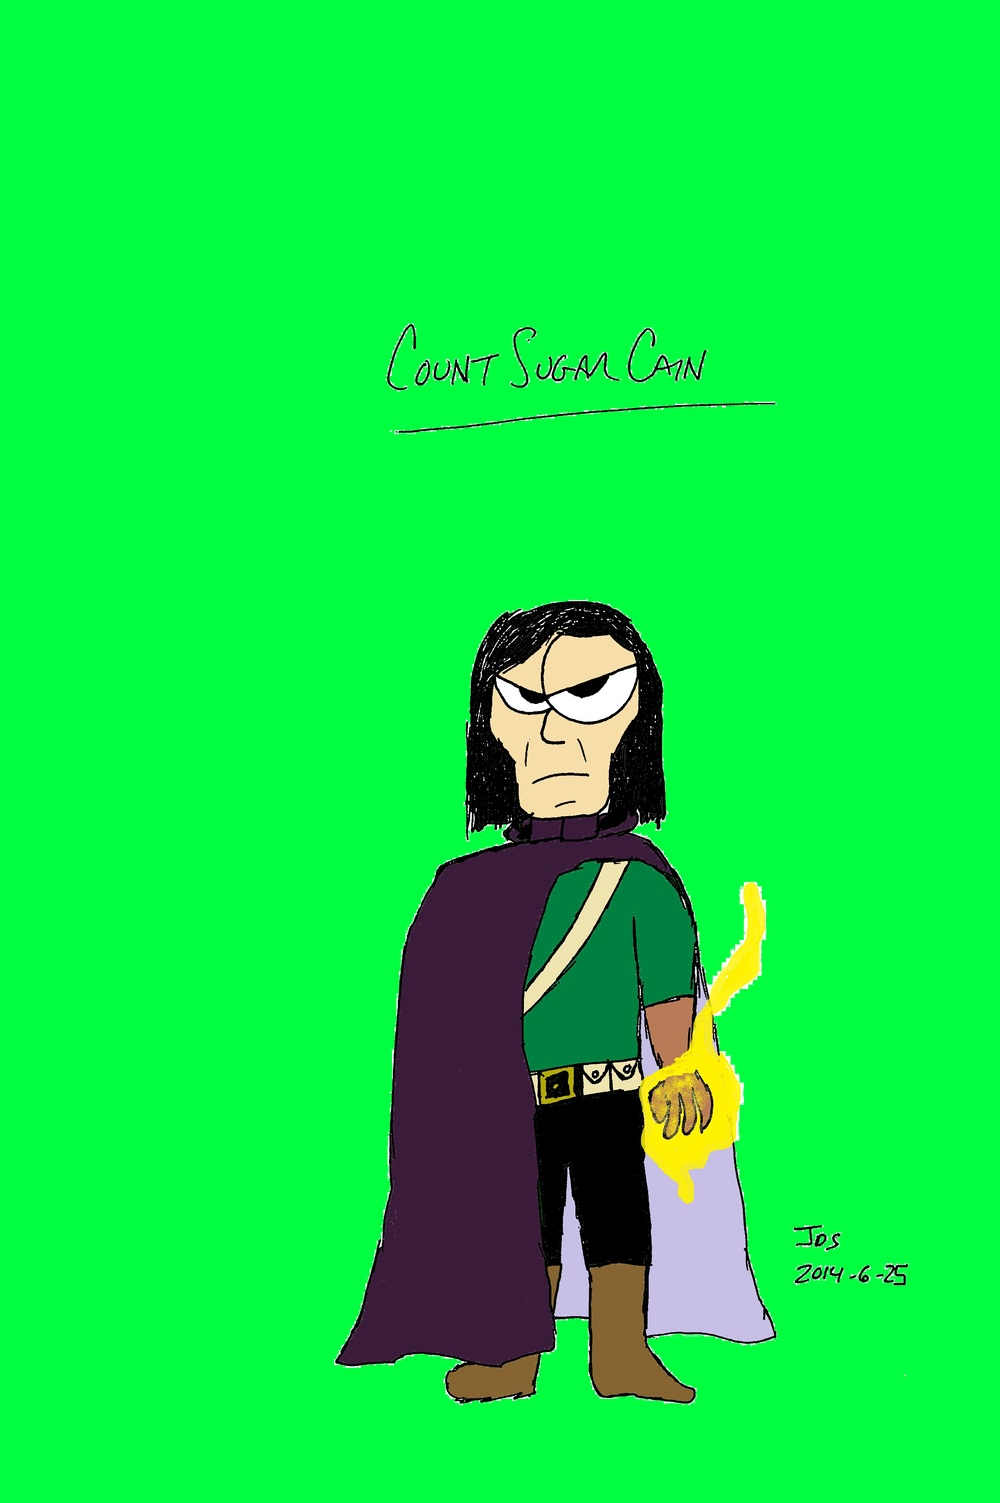 COUNT SUGAR CAIN - He's a sorcerer, so that's what that yellow blob around his hand his. I went with a purple cloak because it felt more regal, while Sugar Cain's clothes help him blend into the forest where he...oh, I've said too much.